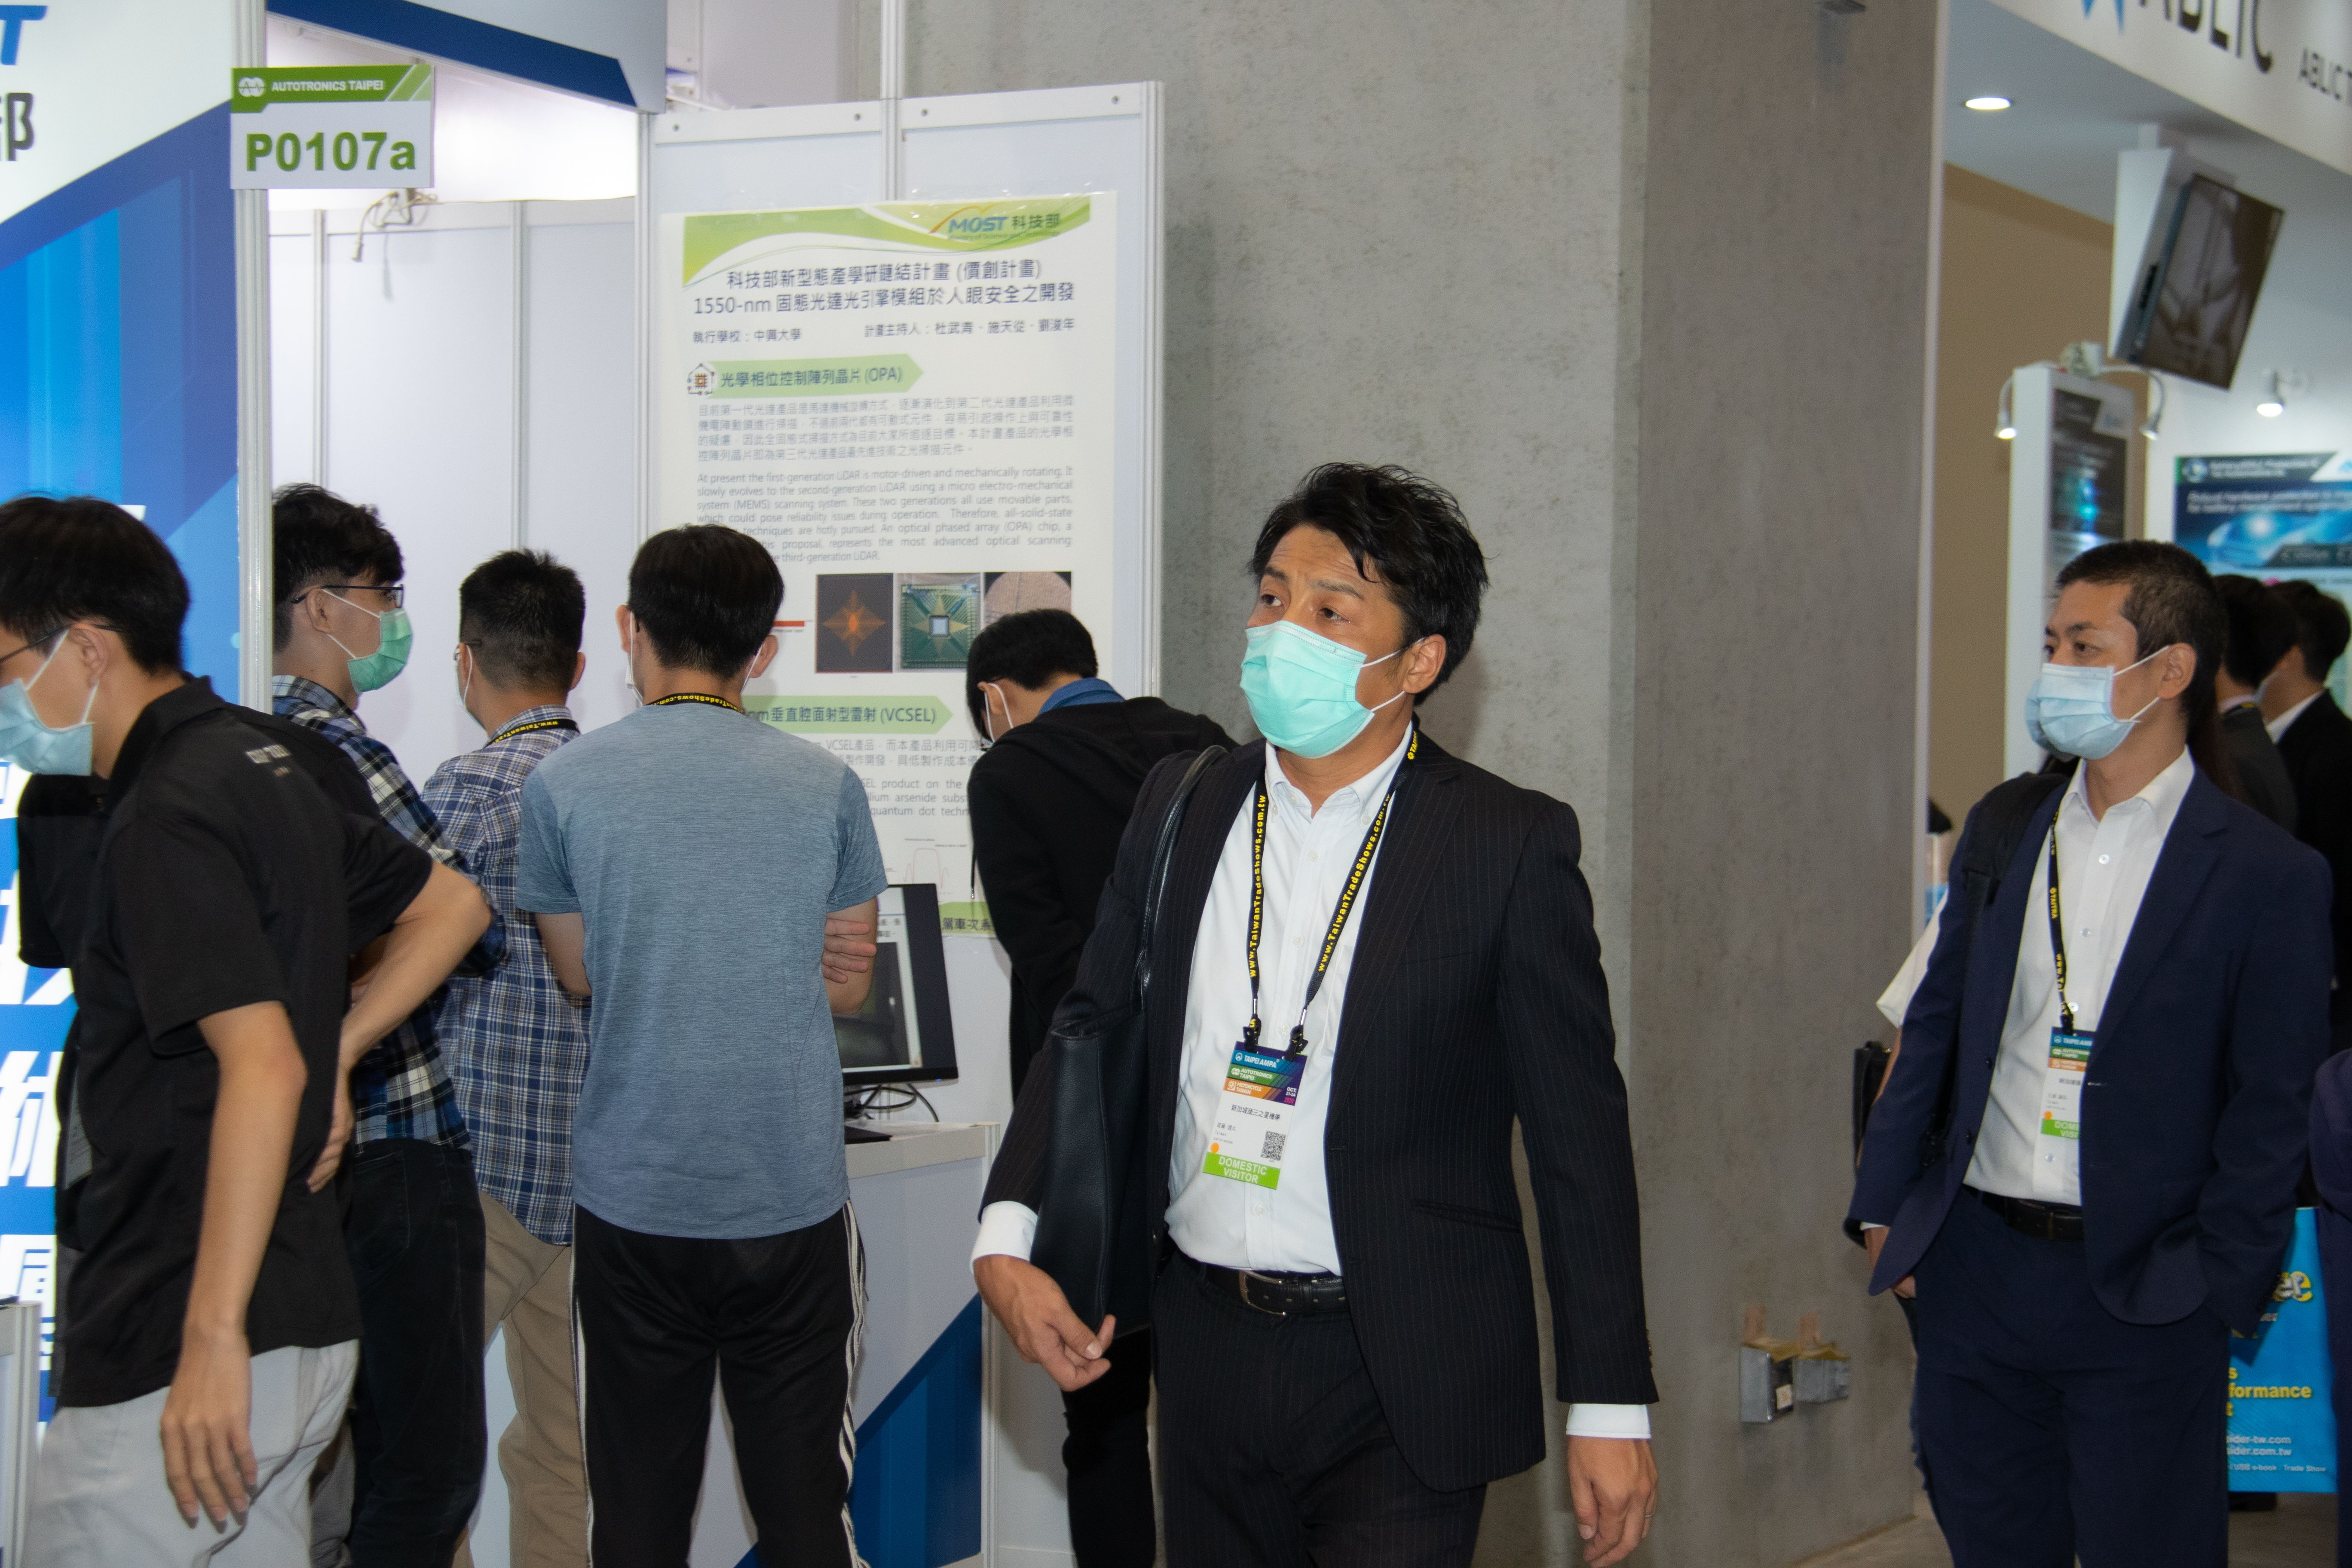 https://storage.googleapis.com/www.taiwantradeshow.com.tw/activity-photo/202010/T-37048157-name.jpg